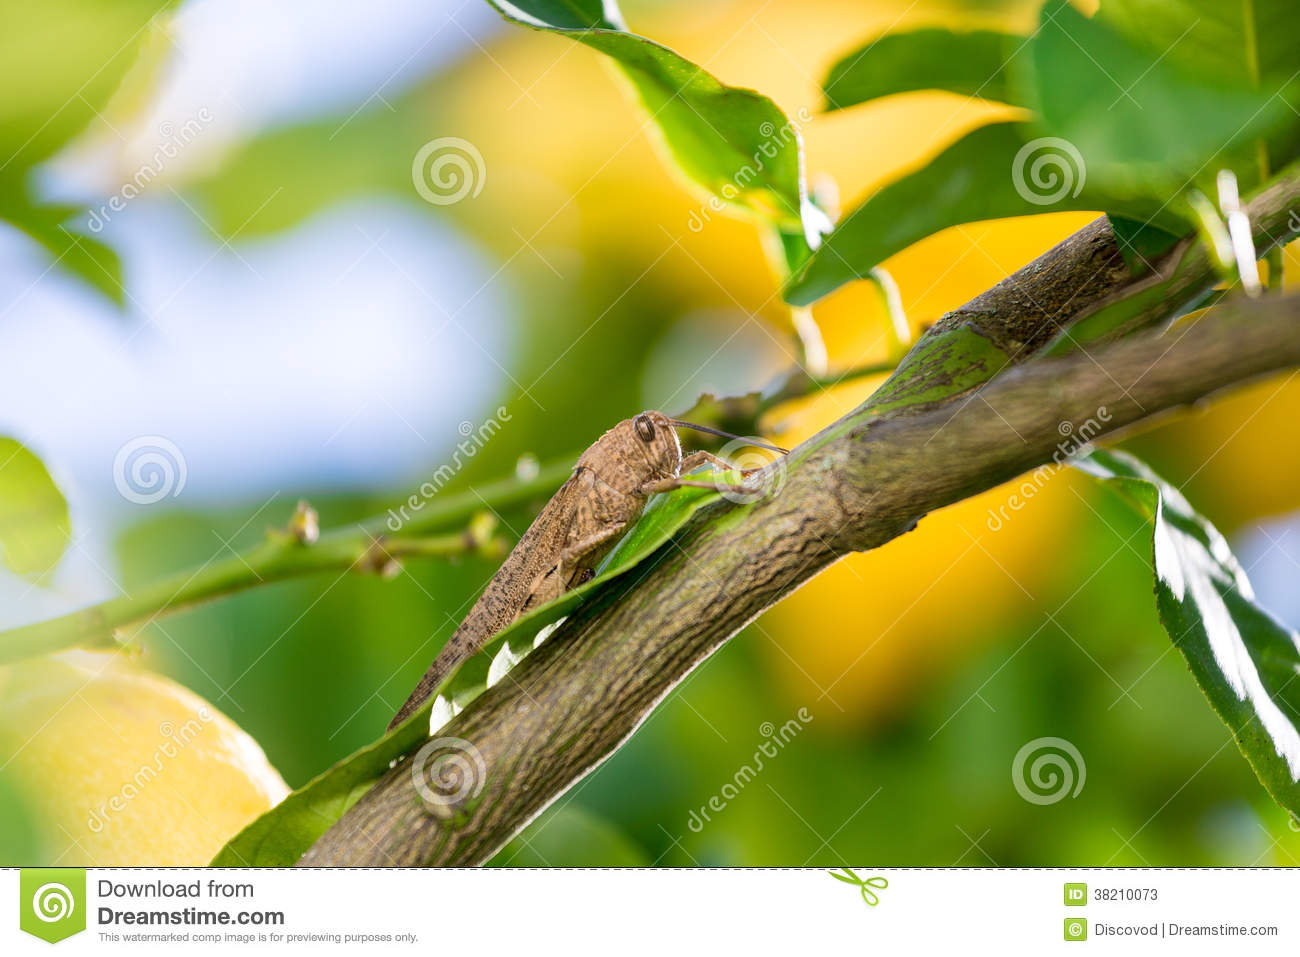 Locust Sits On A Branch Of Lemon Tree Stock Image - Image